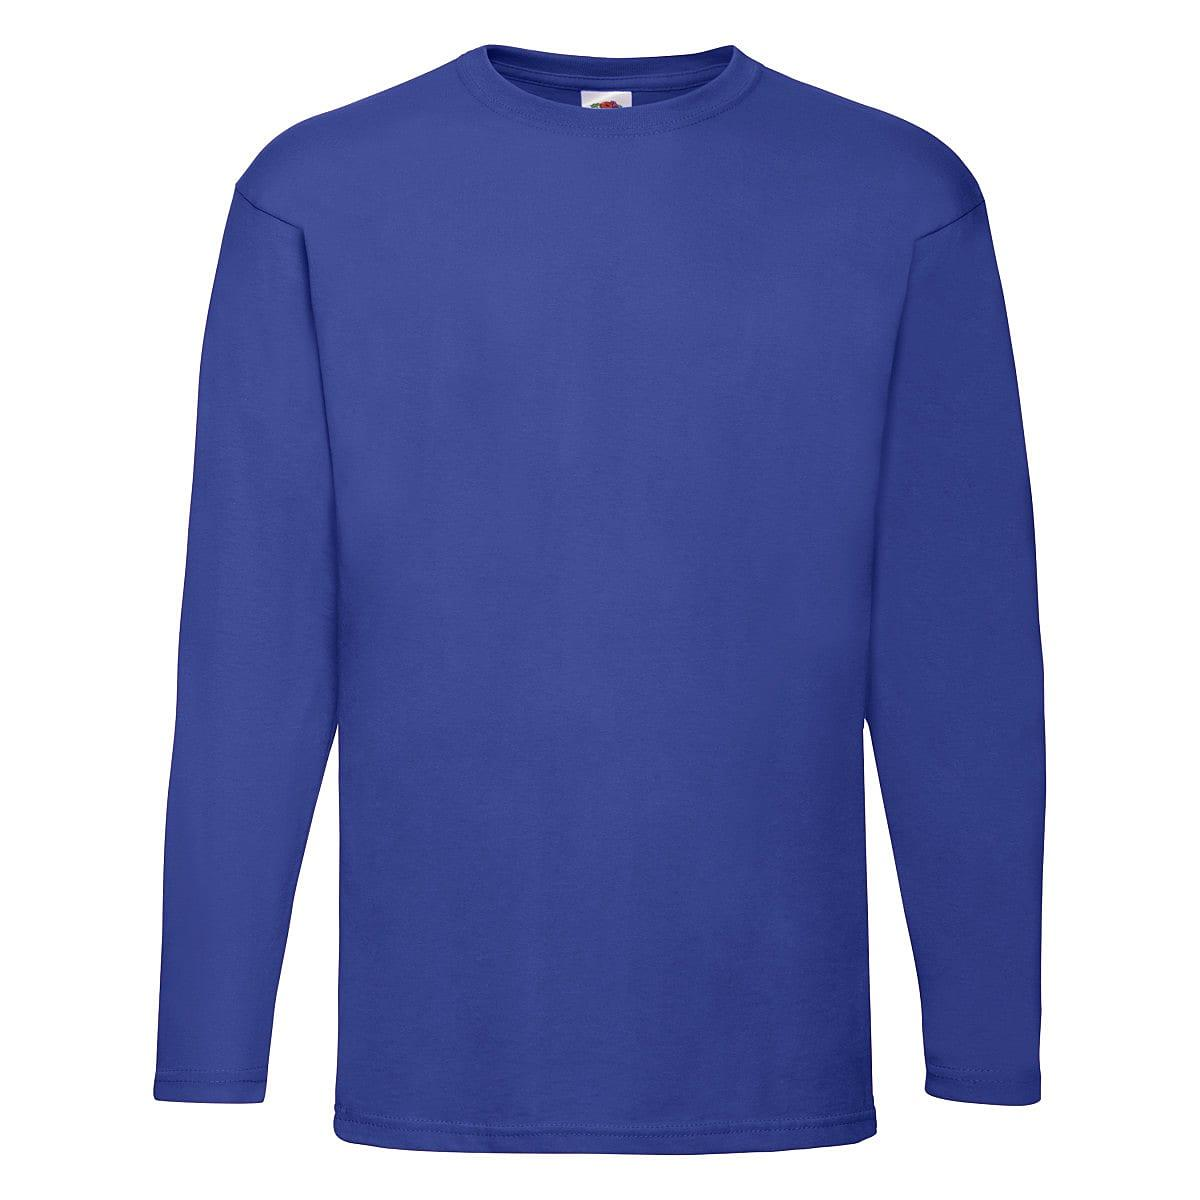 Fruit Of The Loom Valueweight Long-Sleeve T-Shirt in Royal Blue (Product Code: 61038)